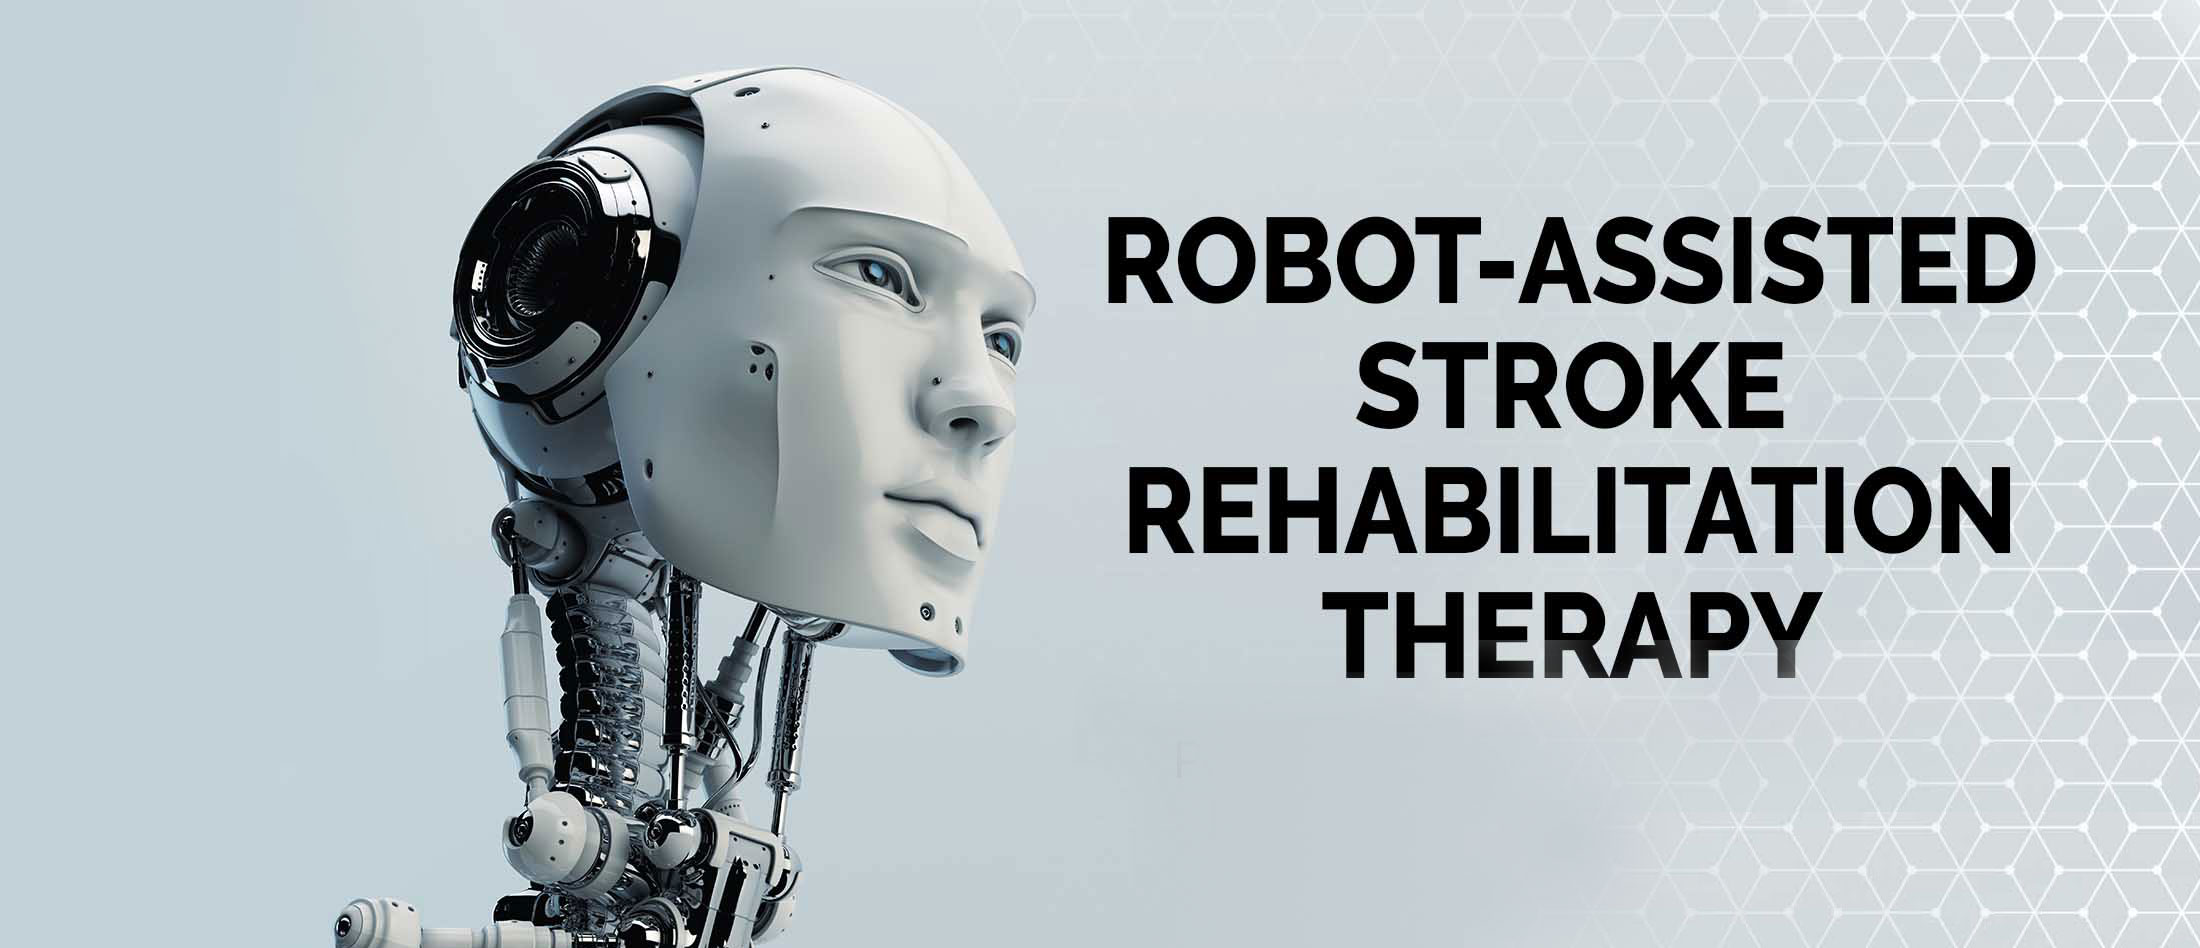 Robot assisted stroke rehab therapy